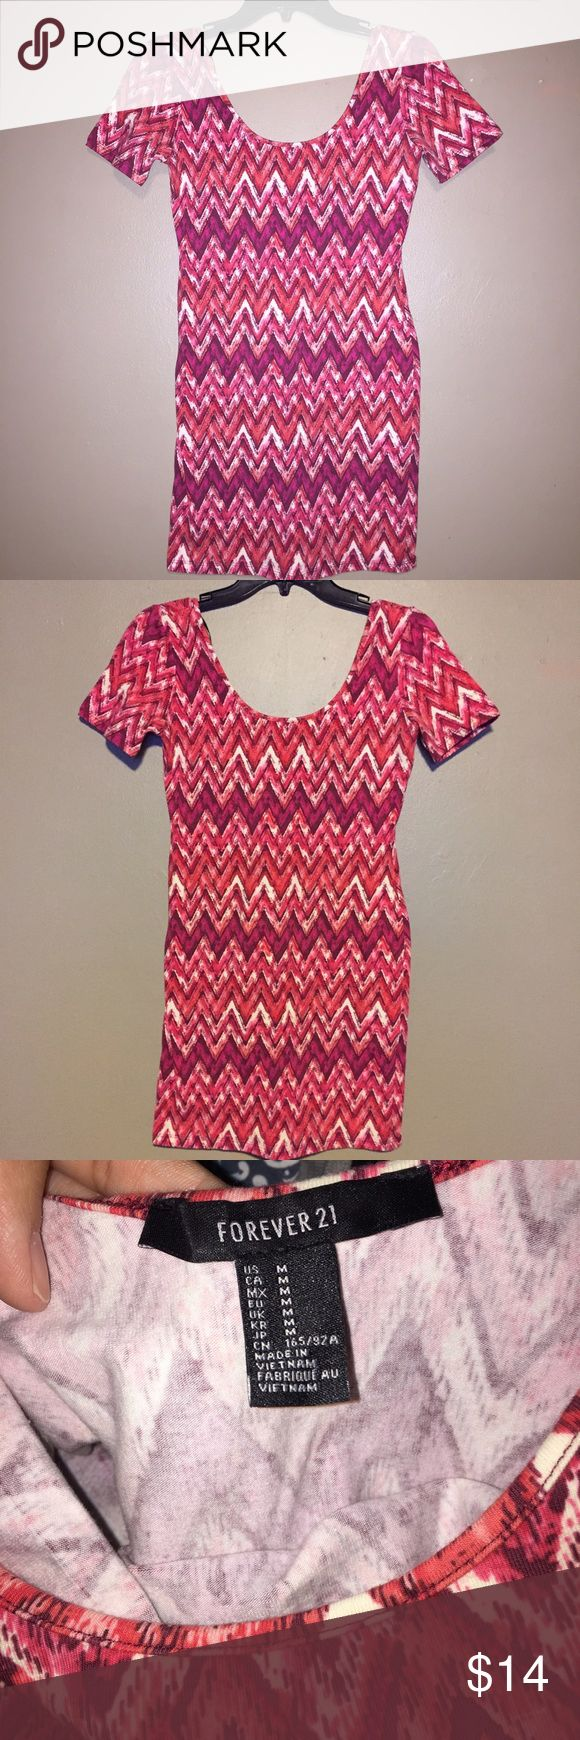 Forever 21 Pink bodycon dress Bodycon dress. New without tags. Forever 21 Dresses Mini